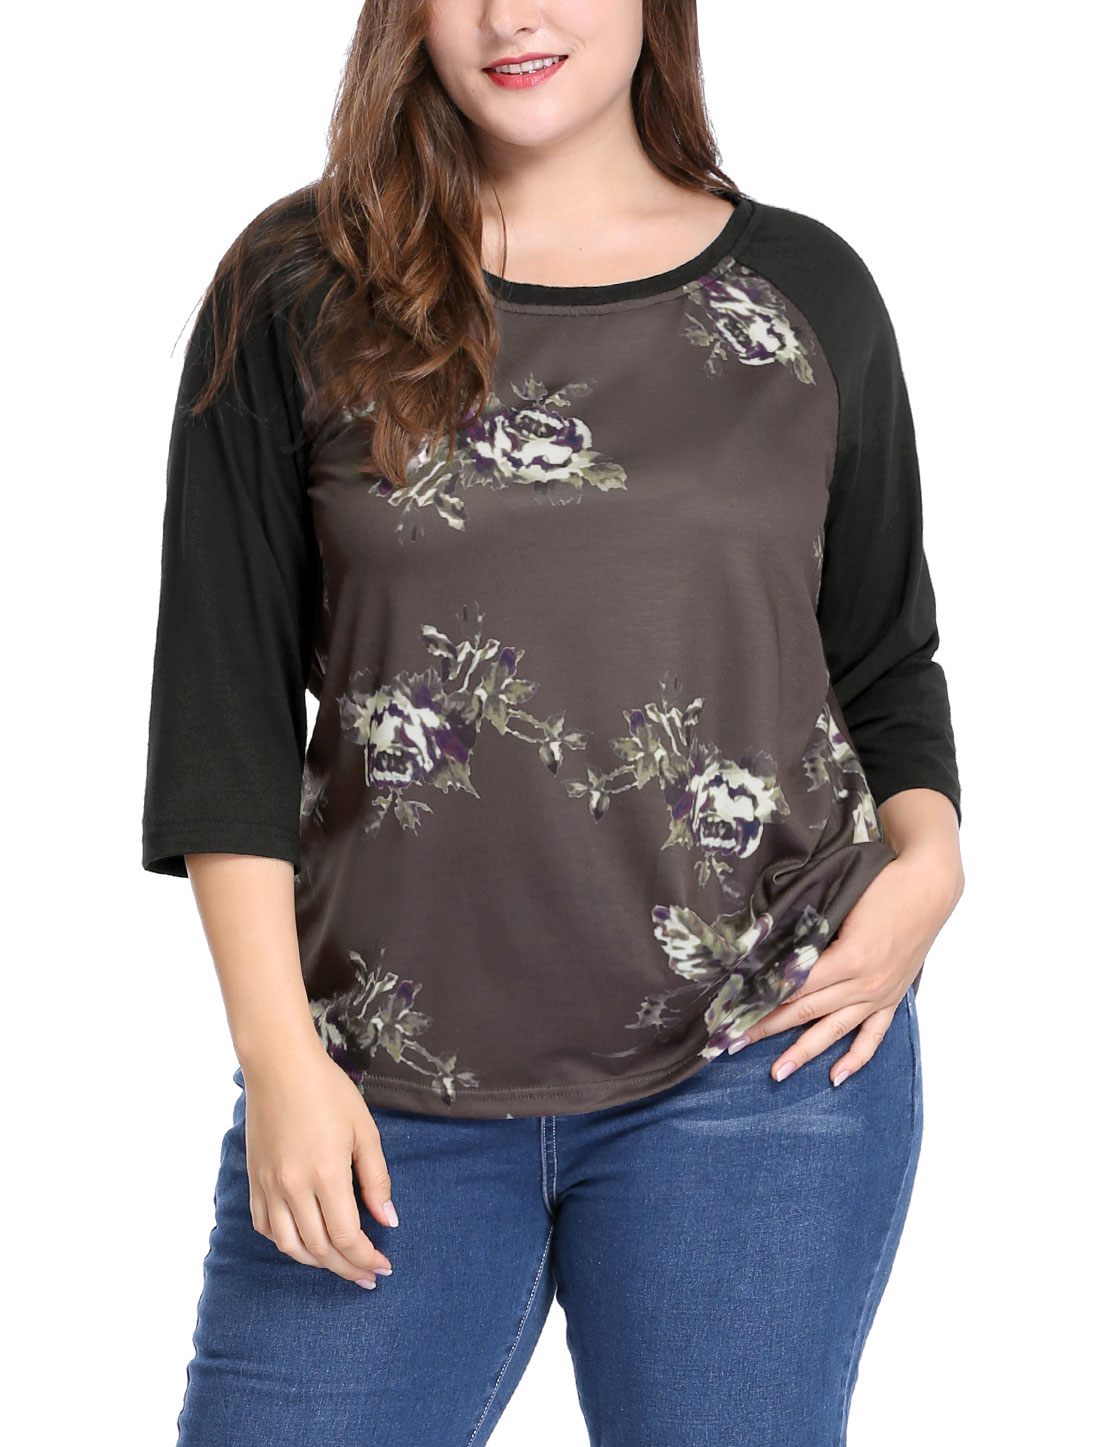 Women Plus Size 3/4 Raglan Sleeves Scoop Neck Floral Top Coffee 1X